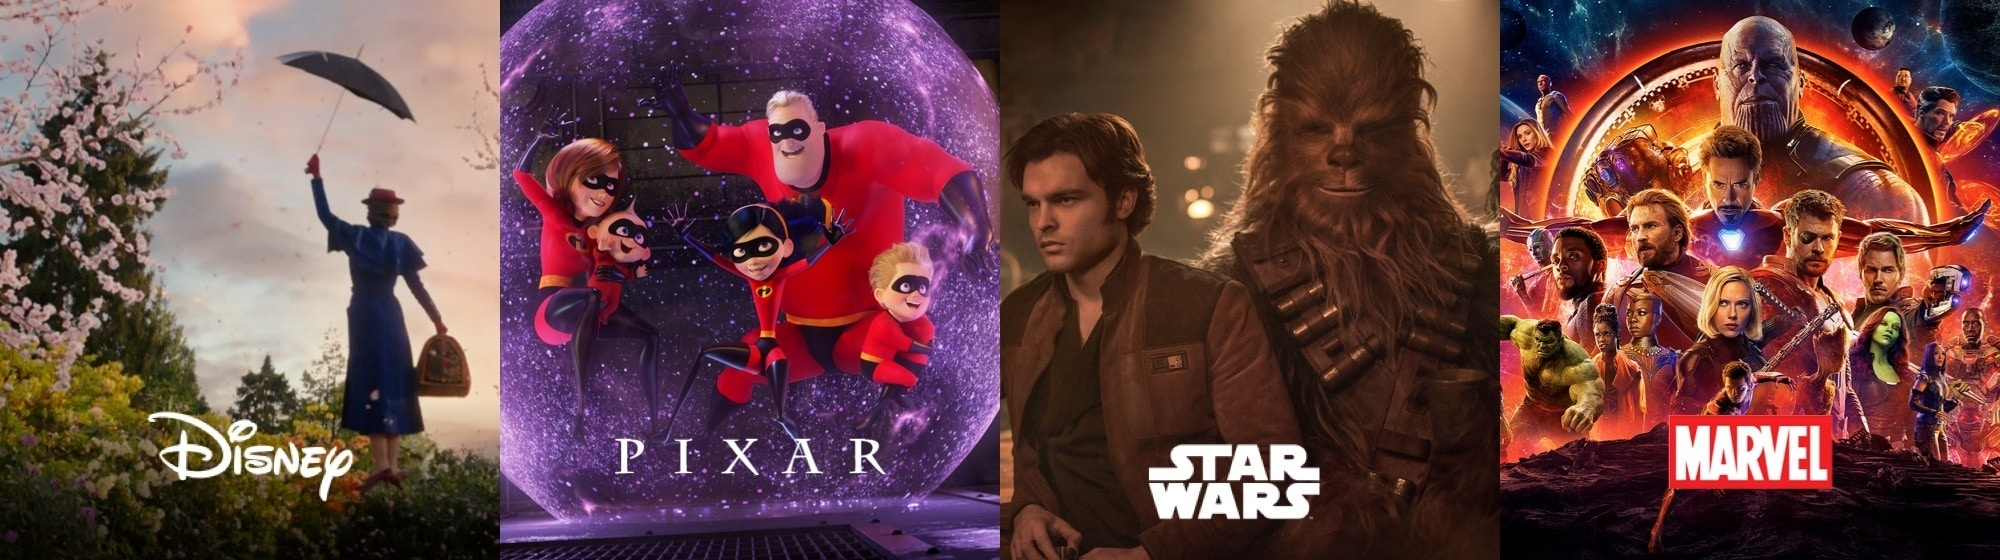 Find out the latest Disney movies and film trailers